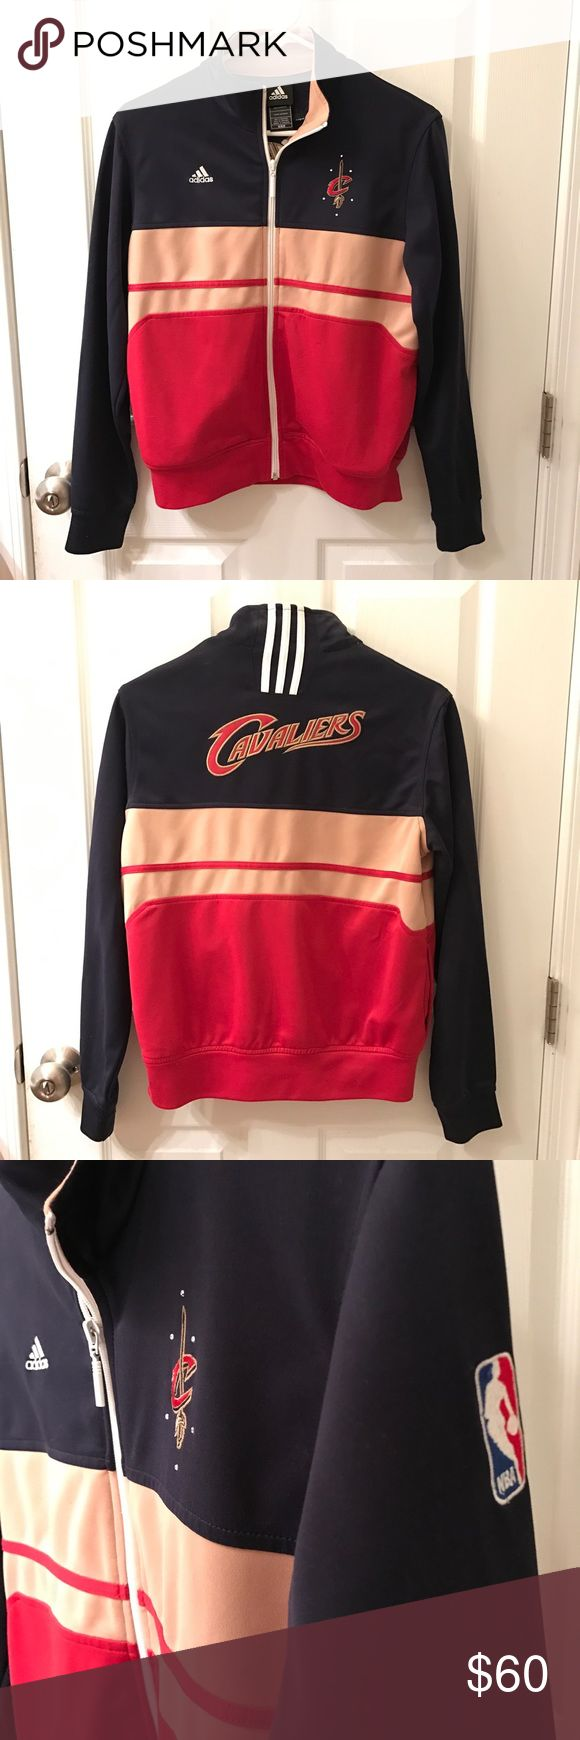 """Official NBA Cleveland Cavaliers Adidas Jacket Gemstones around the """"C"""" on the front. So cute! Only worn once or twice. No wear and tear at all. Just don't live in Cleveland anymore to wear it. Adidas Tops Sweatshirts & Hoodies"""